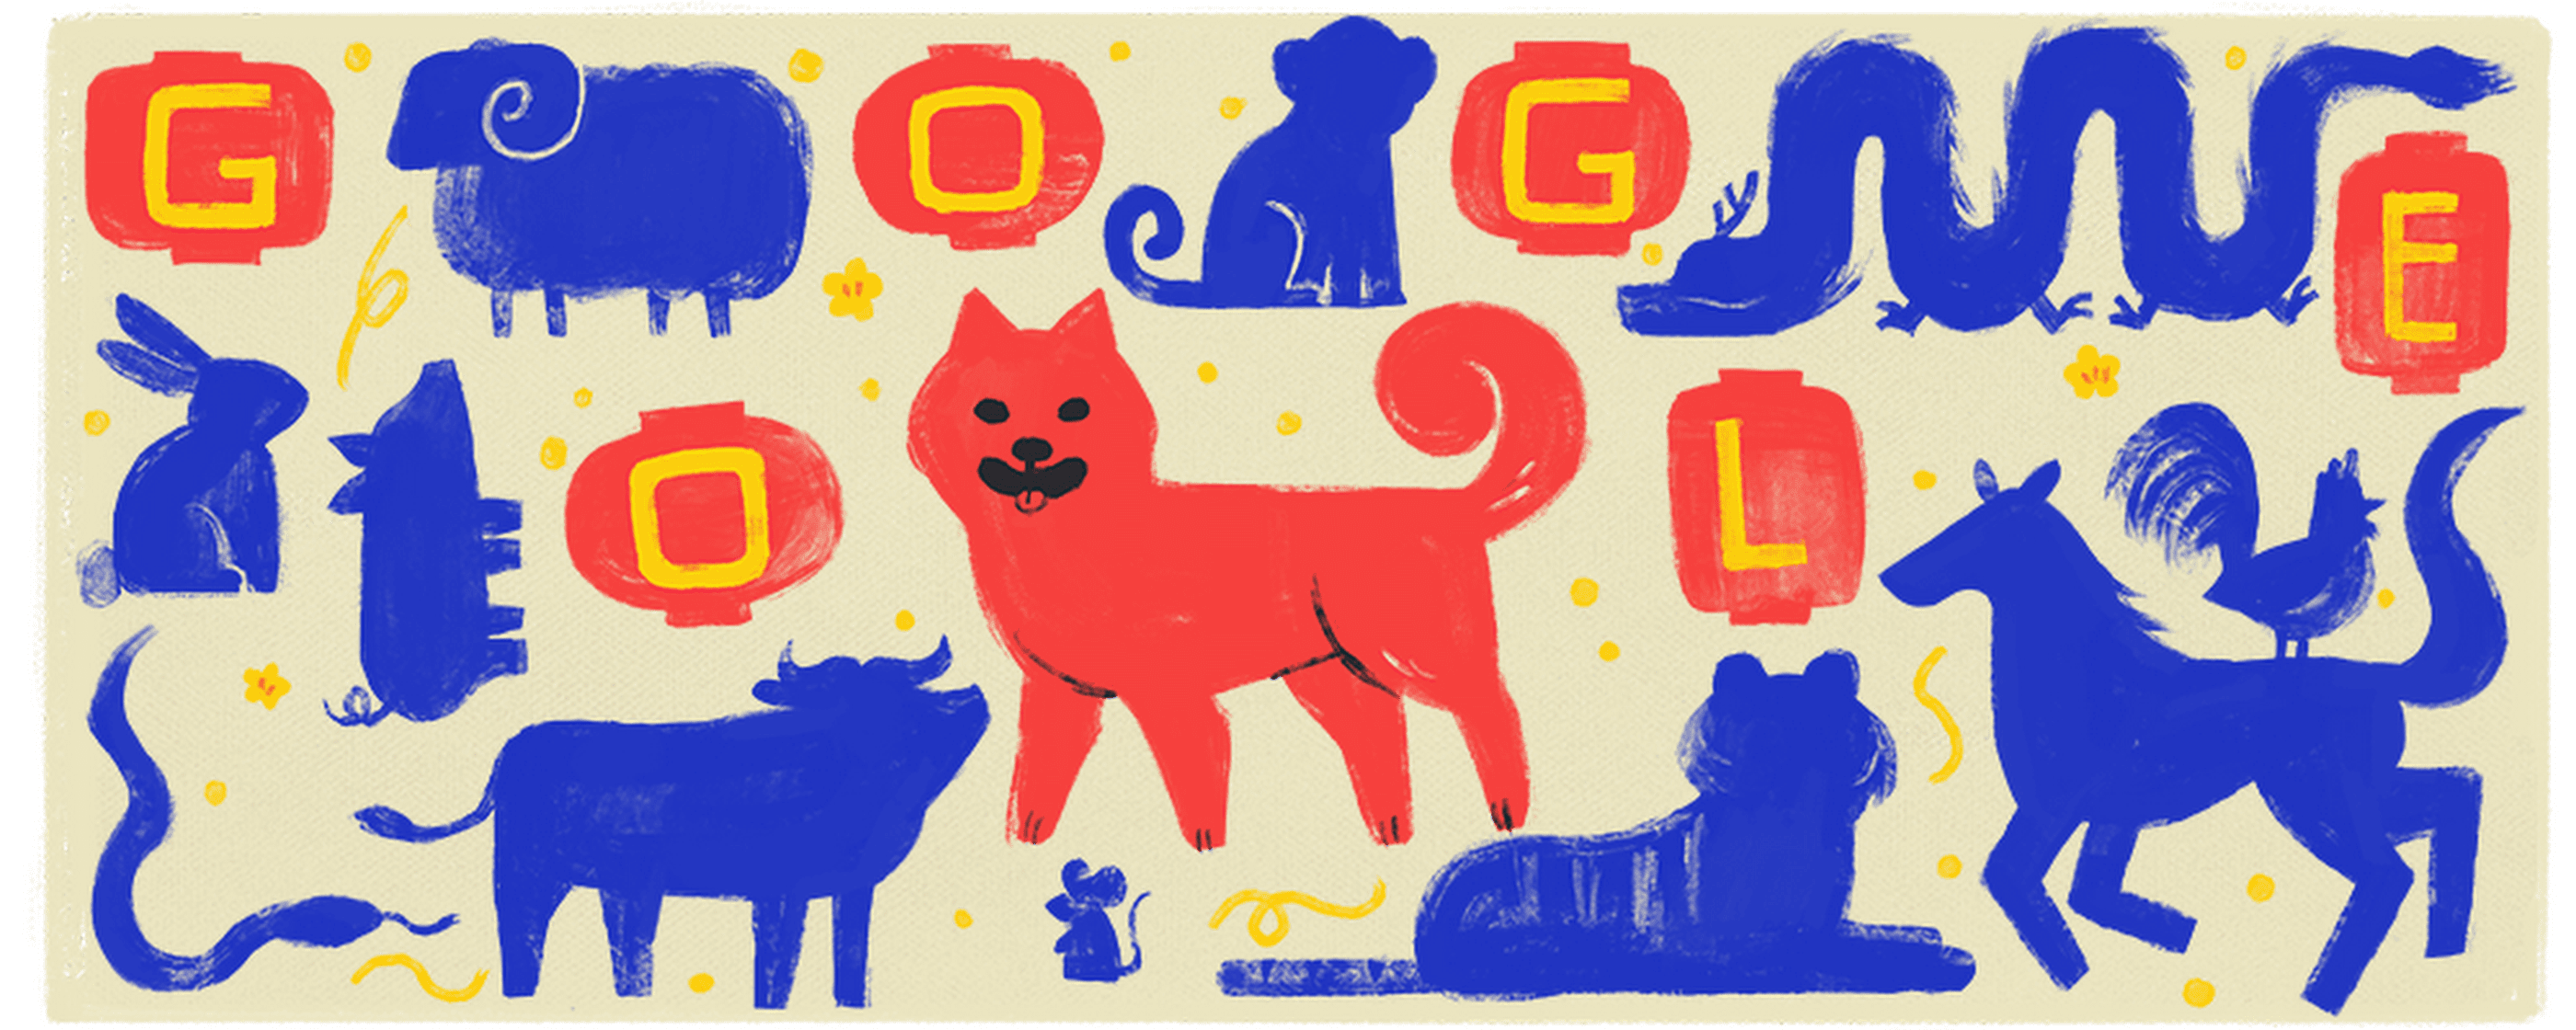 Happy Lunar New Year! Wag hello to the Year of the Dog